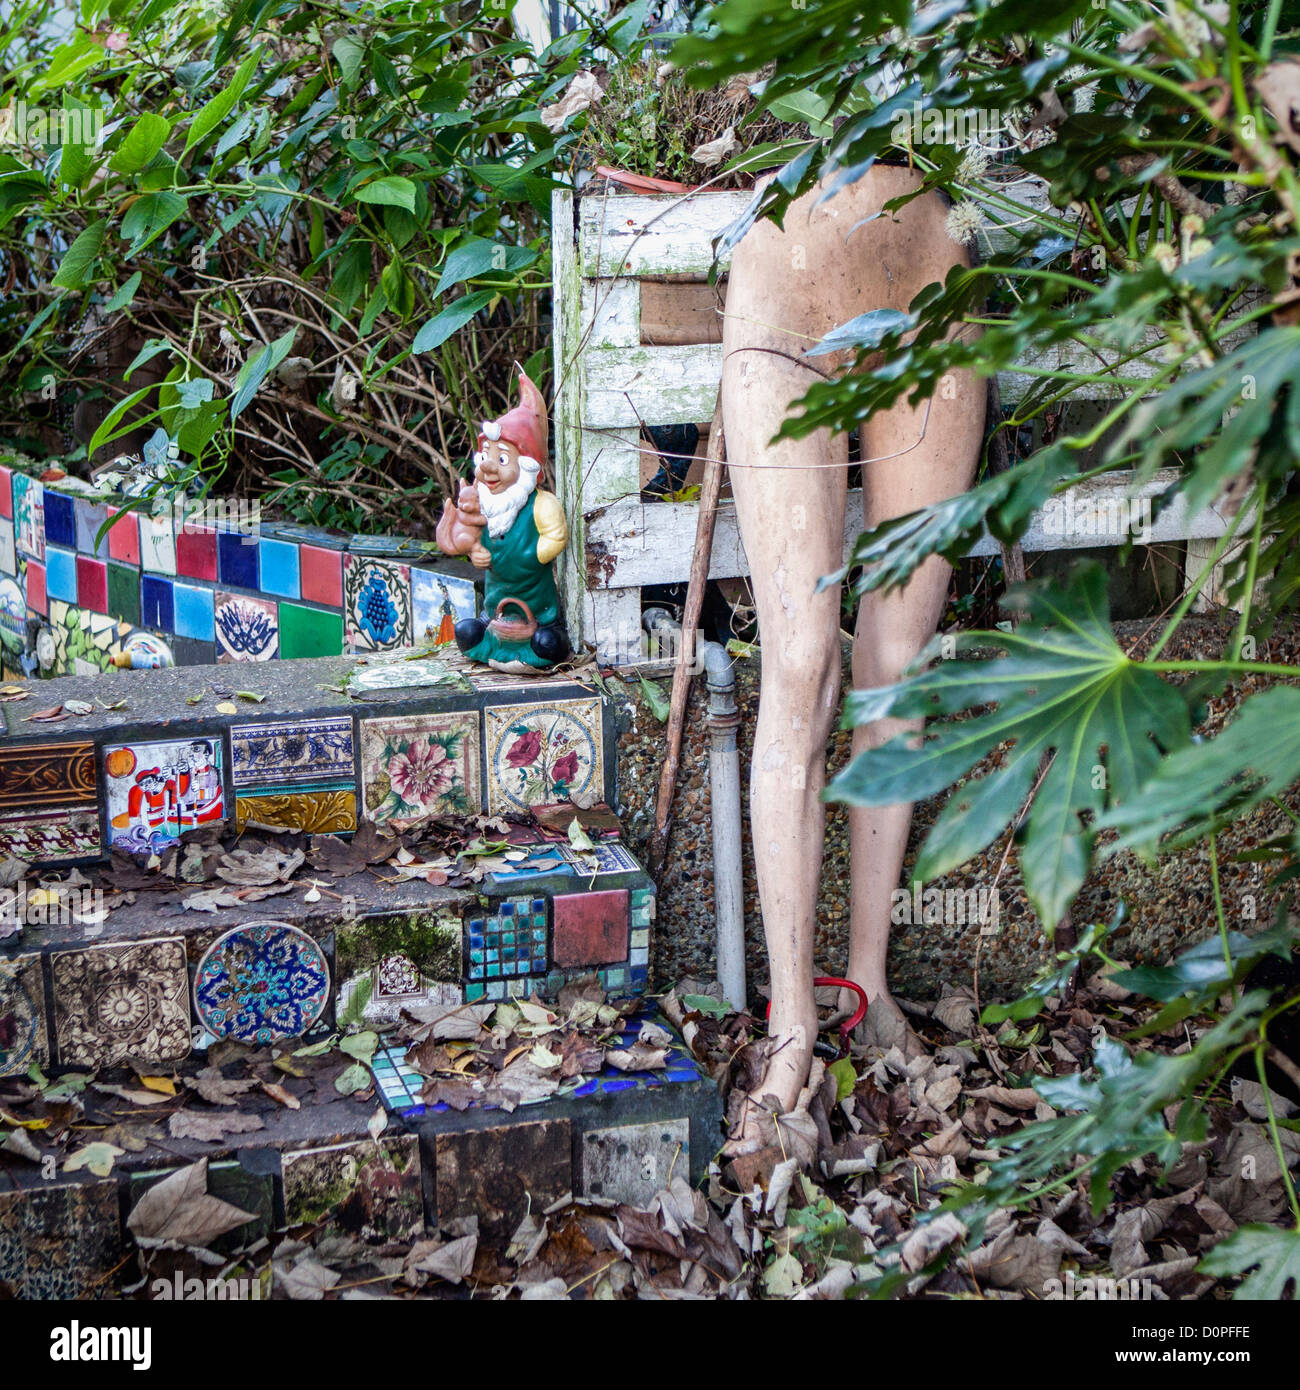 Quirky front garden of a house on Eel Pie island which is home to a creative community - Twickenham - Stock Image